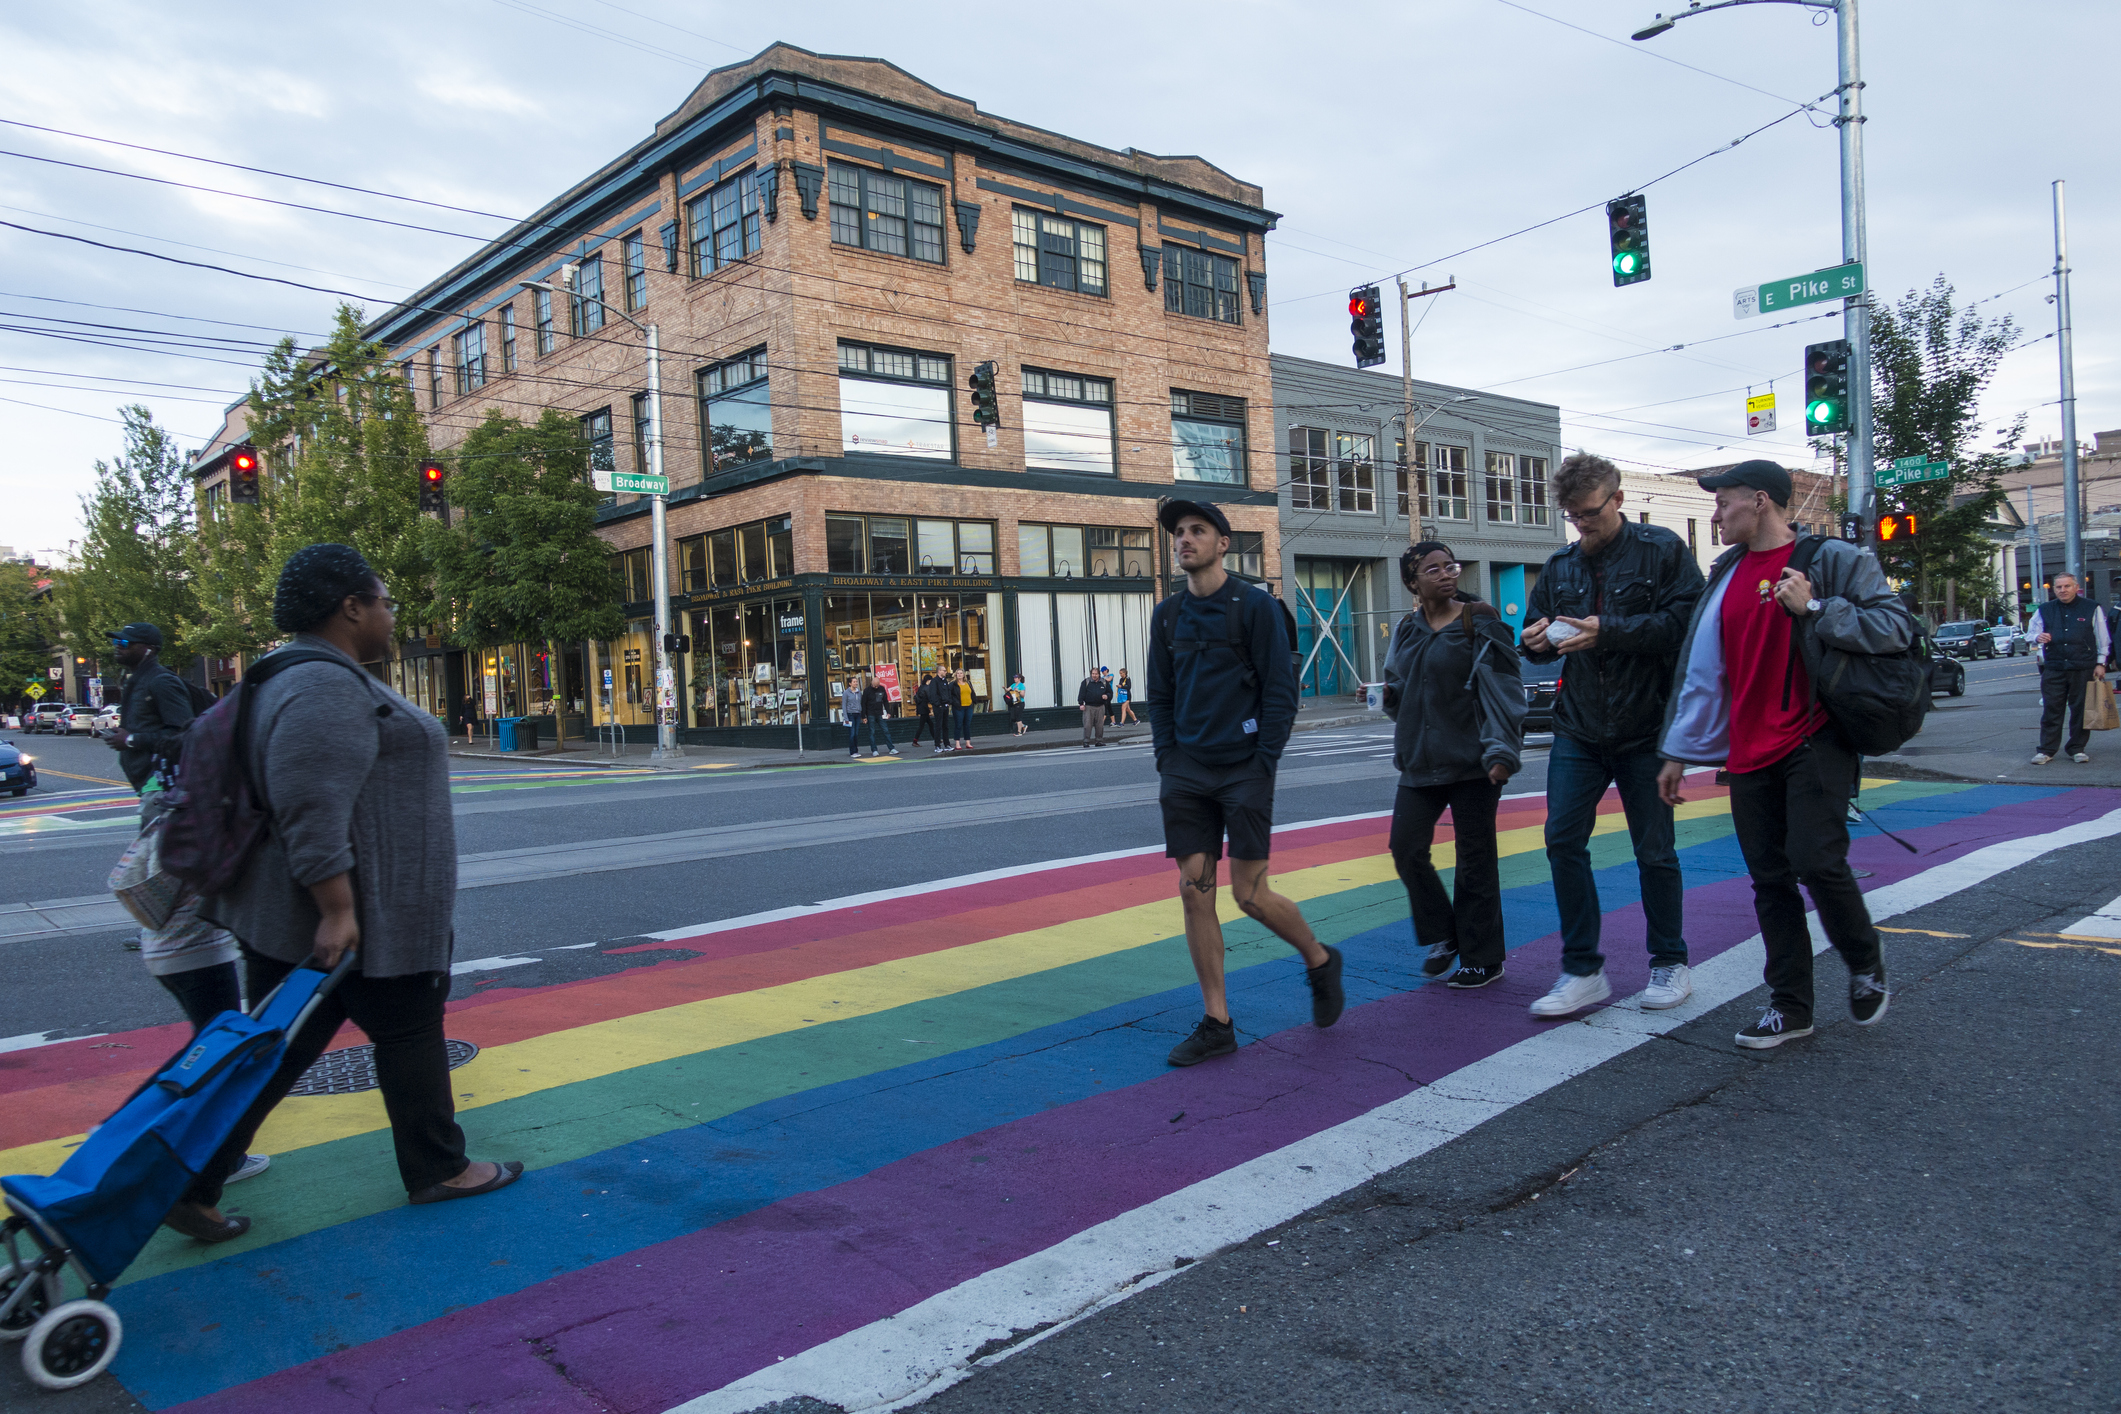 Pedestrians Cross the Street on a Rainbow Crosswalk on Capitol Hill at the Corner of East Pike St and Broadway (iStock/PA